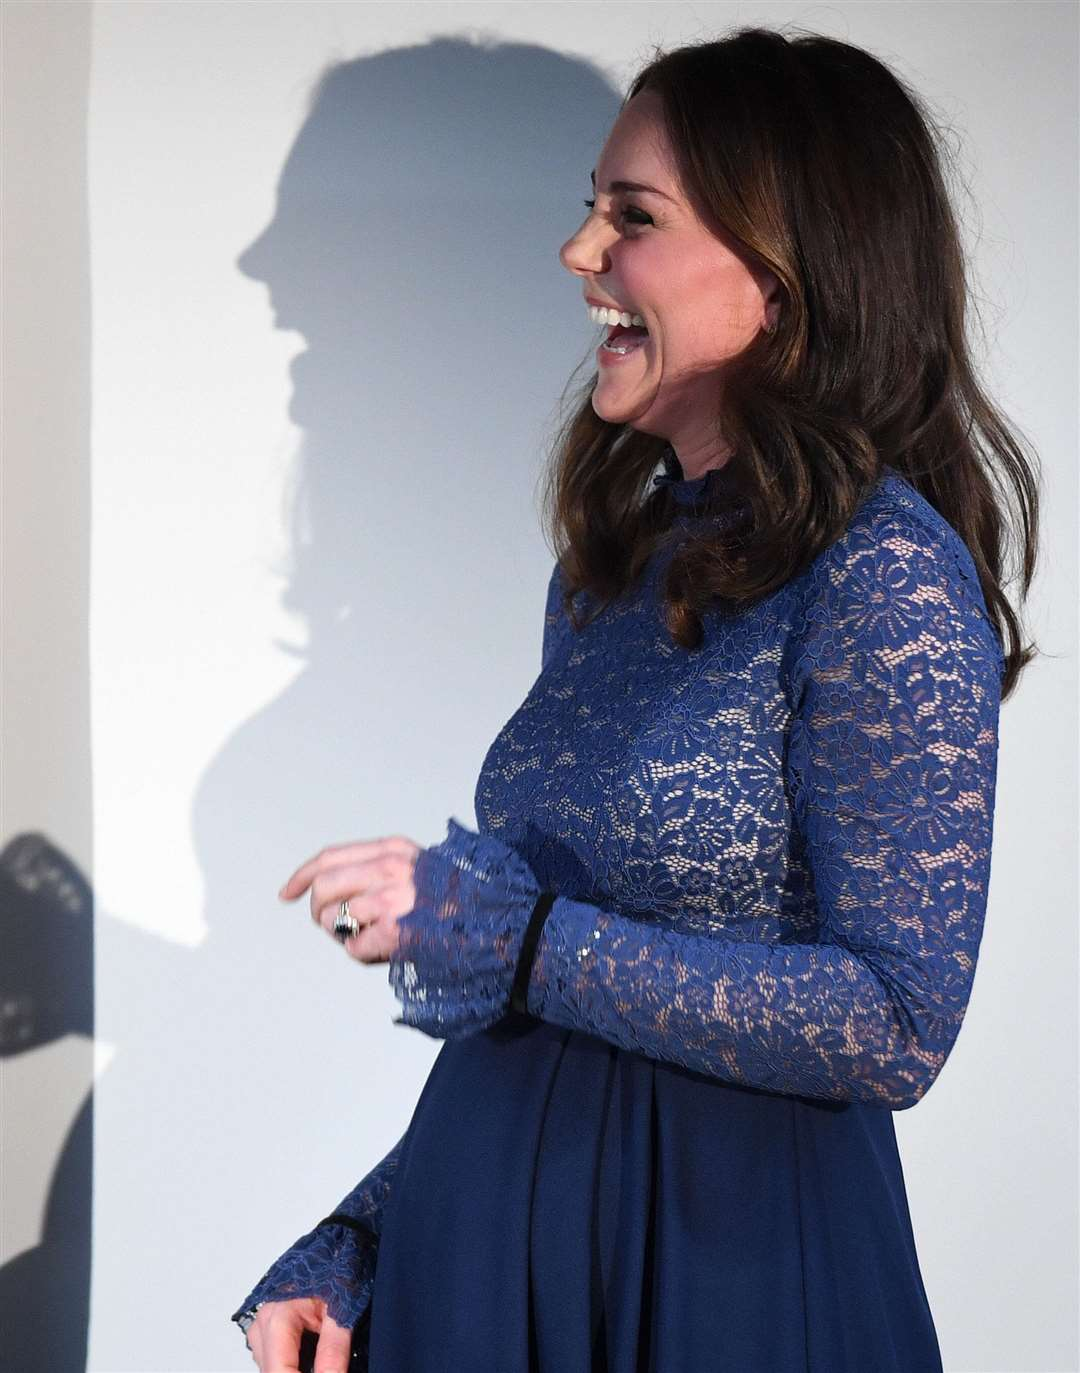 A heavily pregnant Duchess of Cambridge